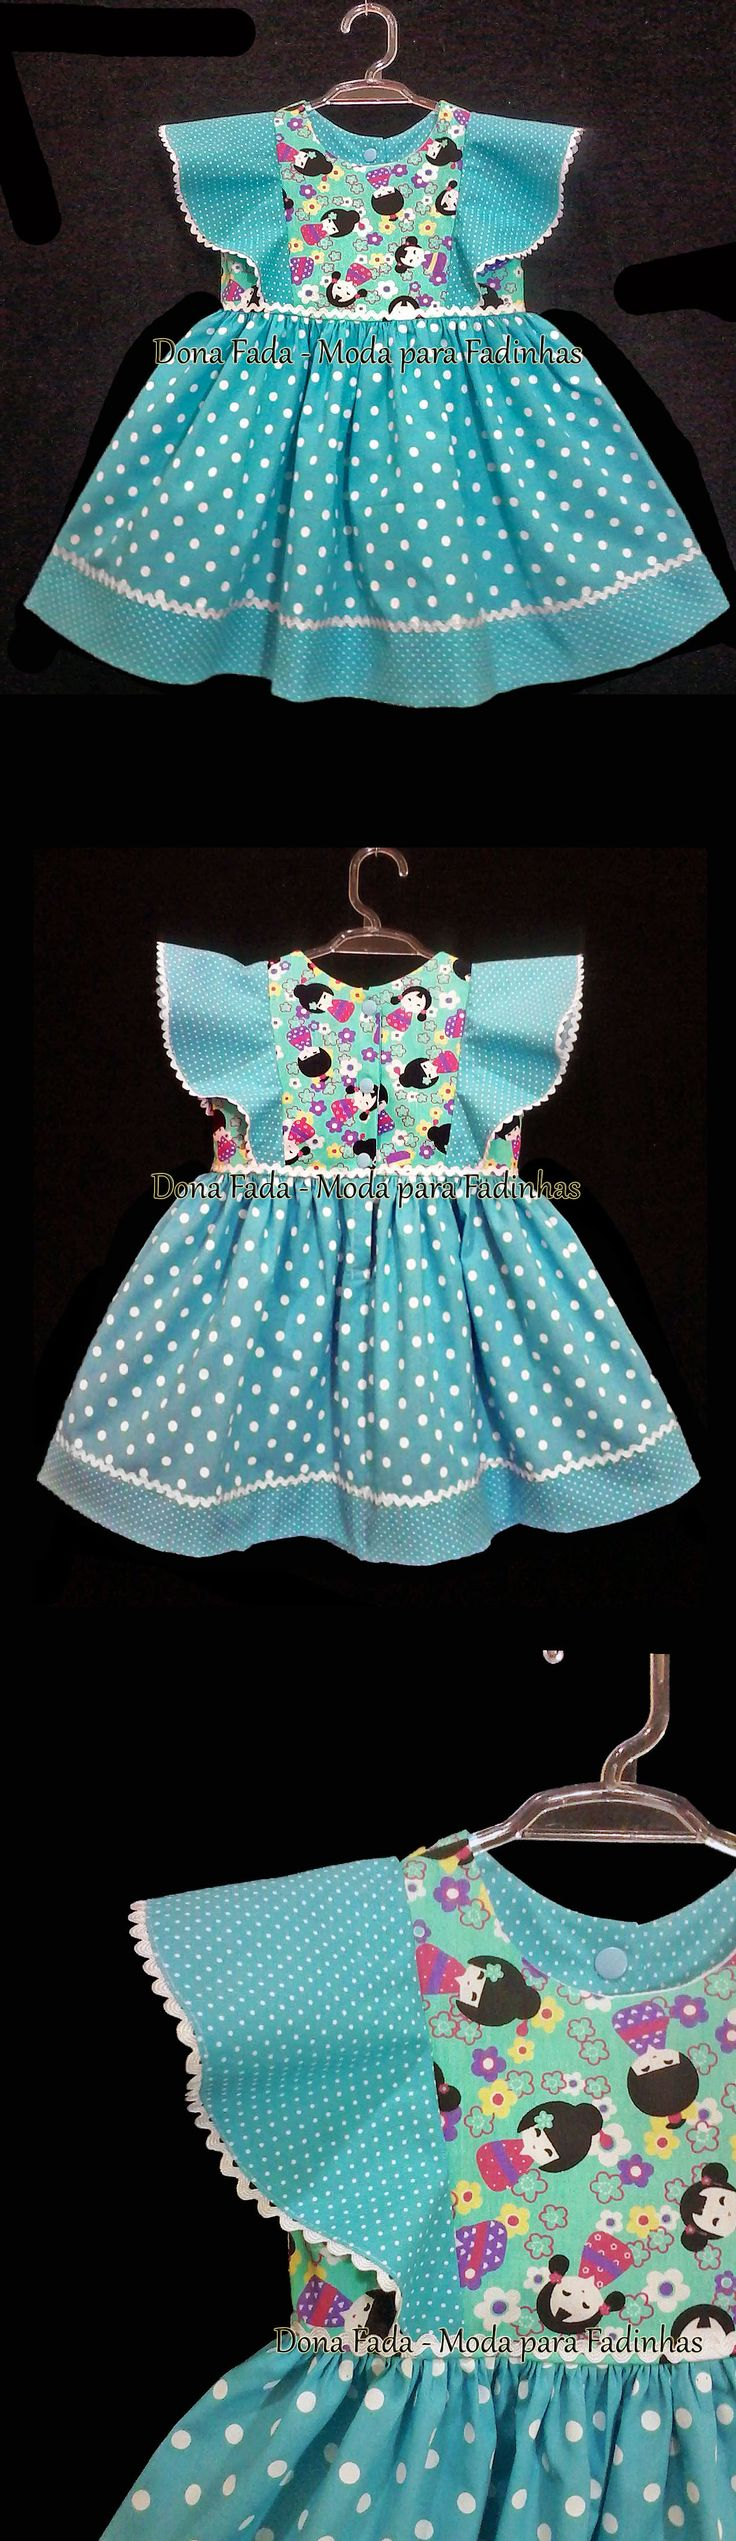 Vestido 18 meses _______________baby - infant - toddler - kids - clothes for girls - - - https://www.facebook.com/dona.fada.moda.para.fadinhas/